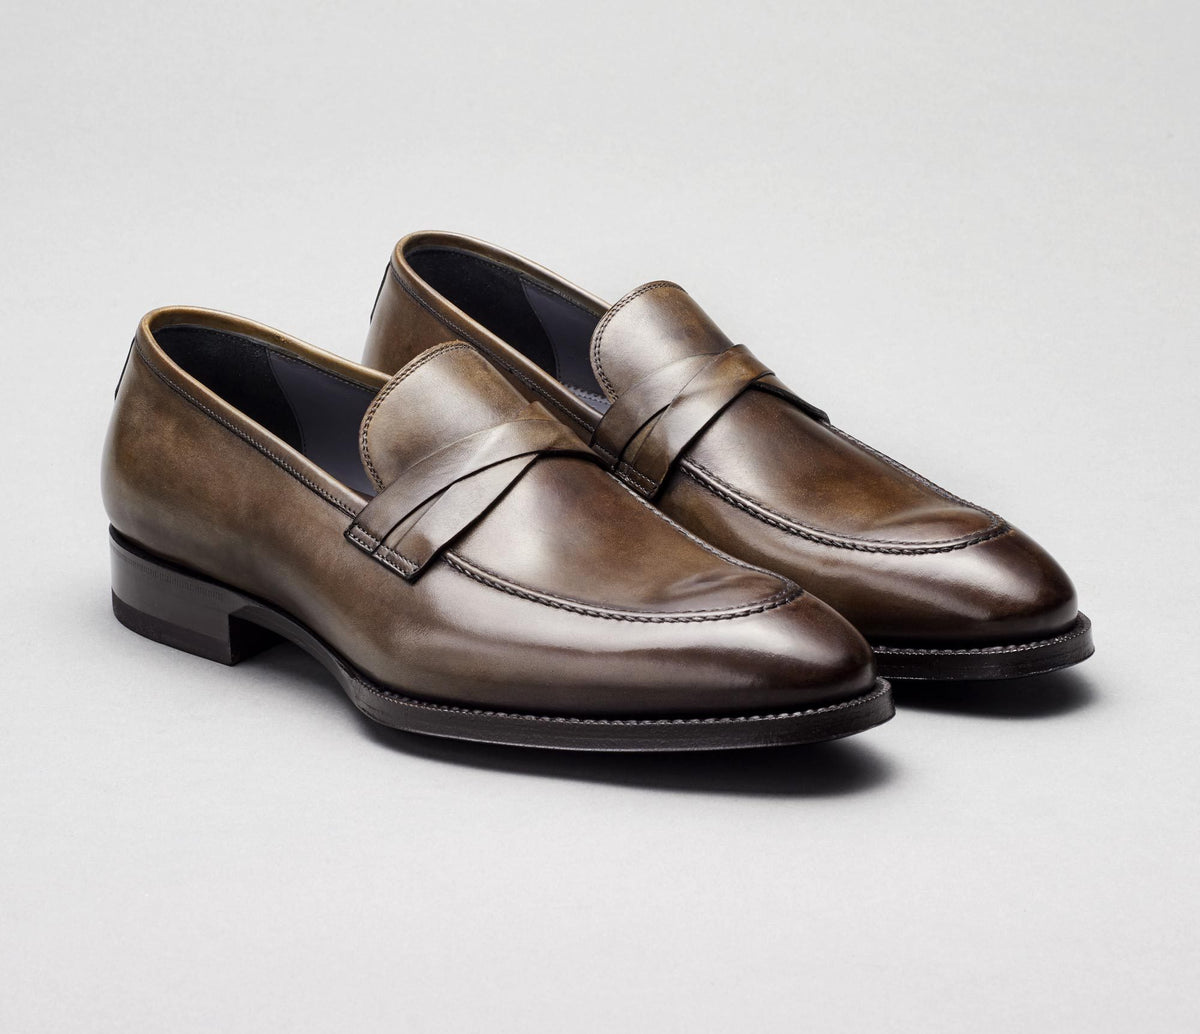 Siena Leather Loafer in Stone Grey